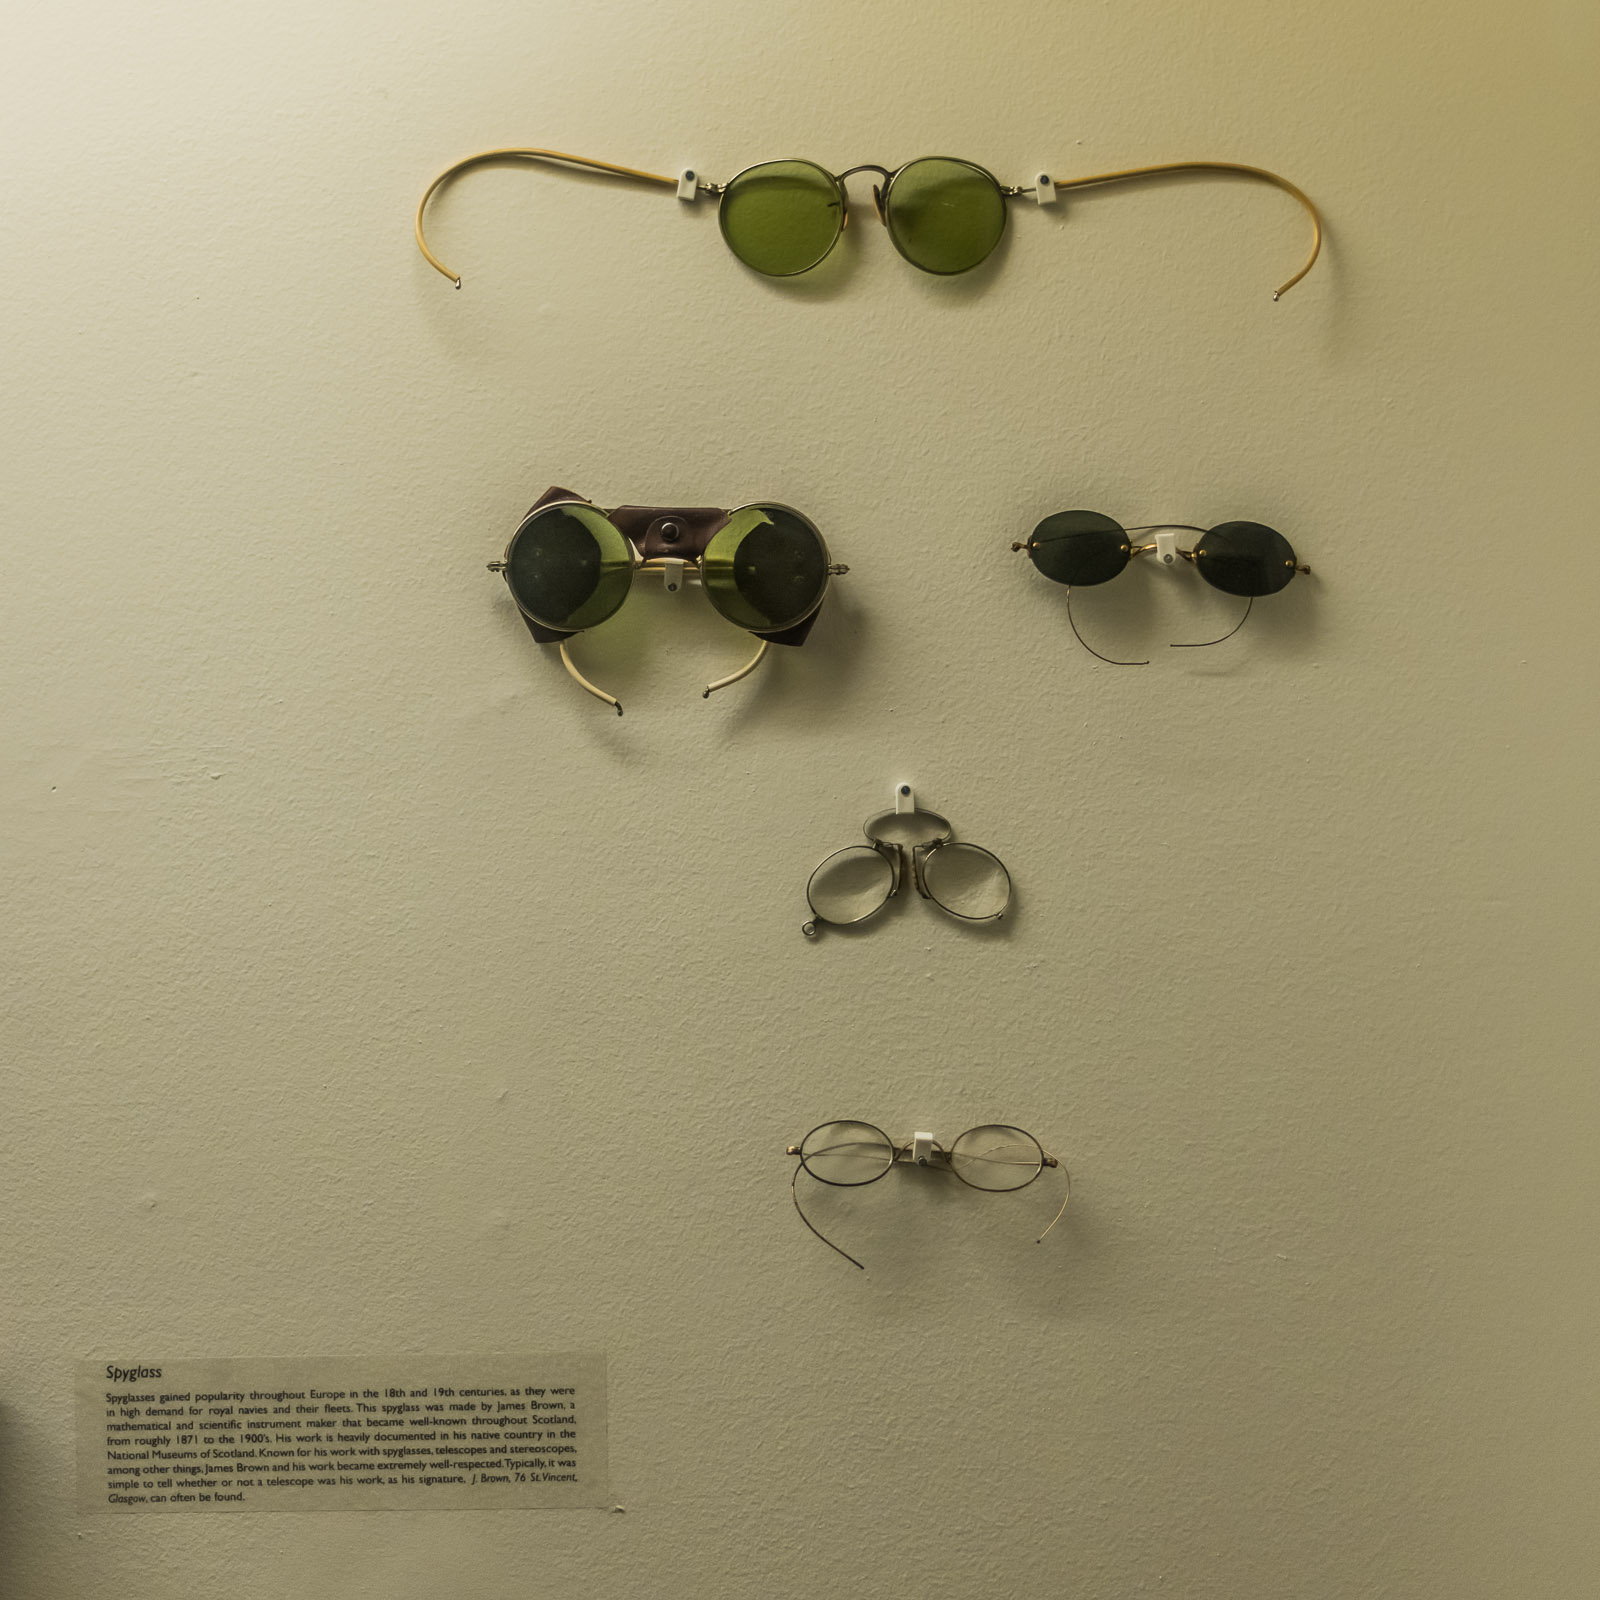 Seeing eye glasses from the collection